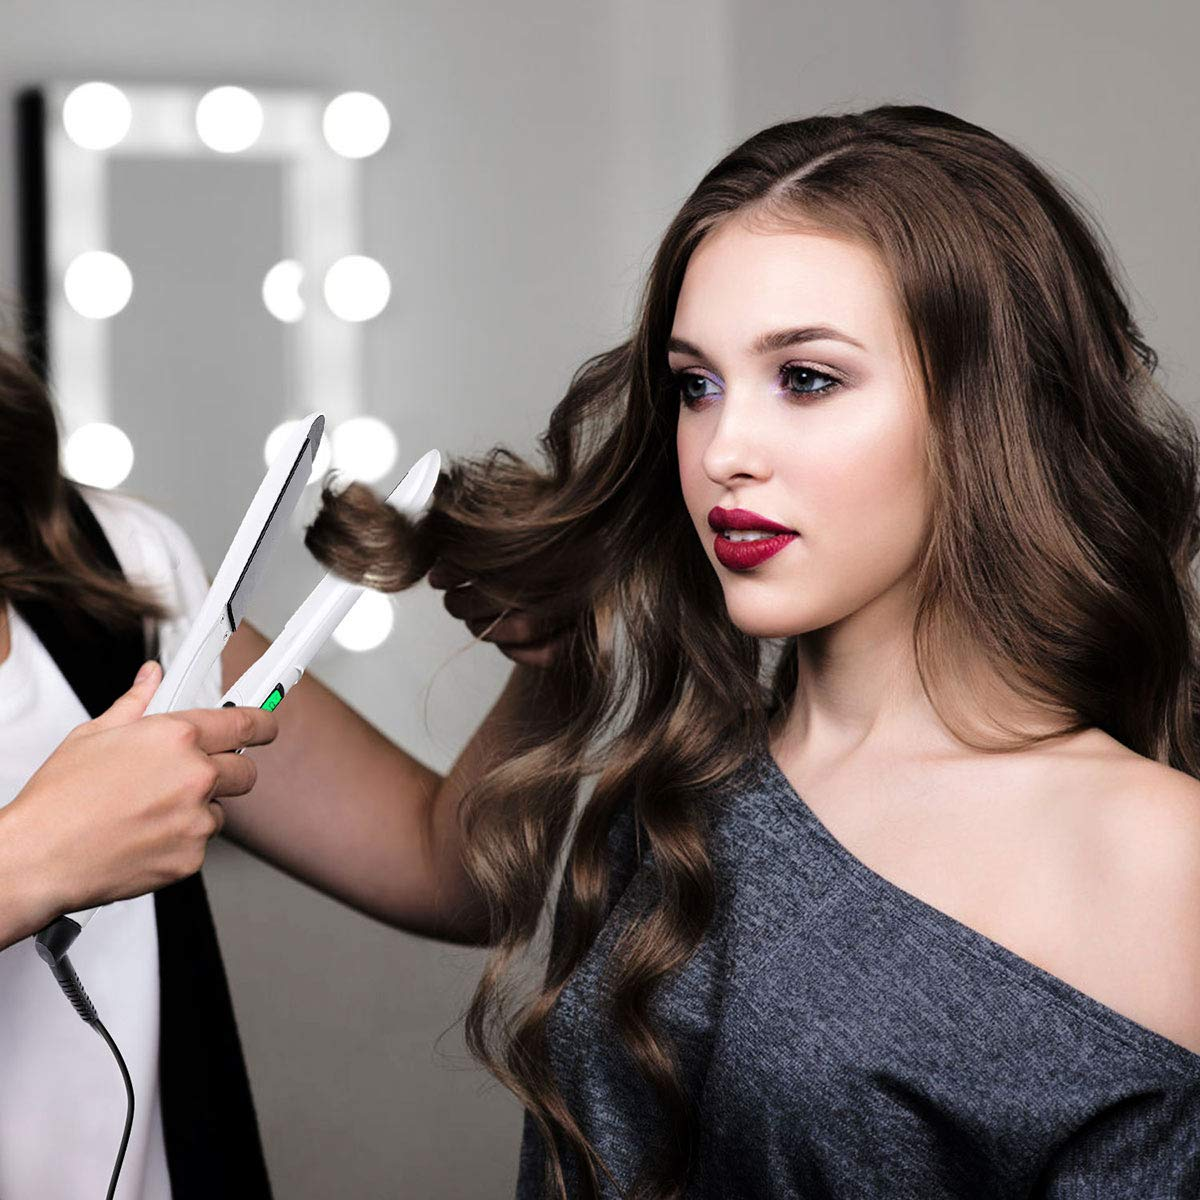 Flat Iron for Hair, 2 in 1 Hair Straightener & Curler with Digital LCD Display - White